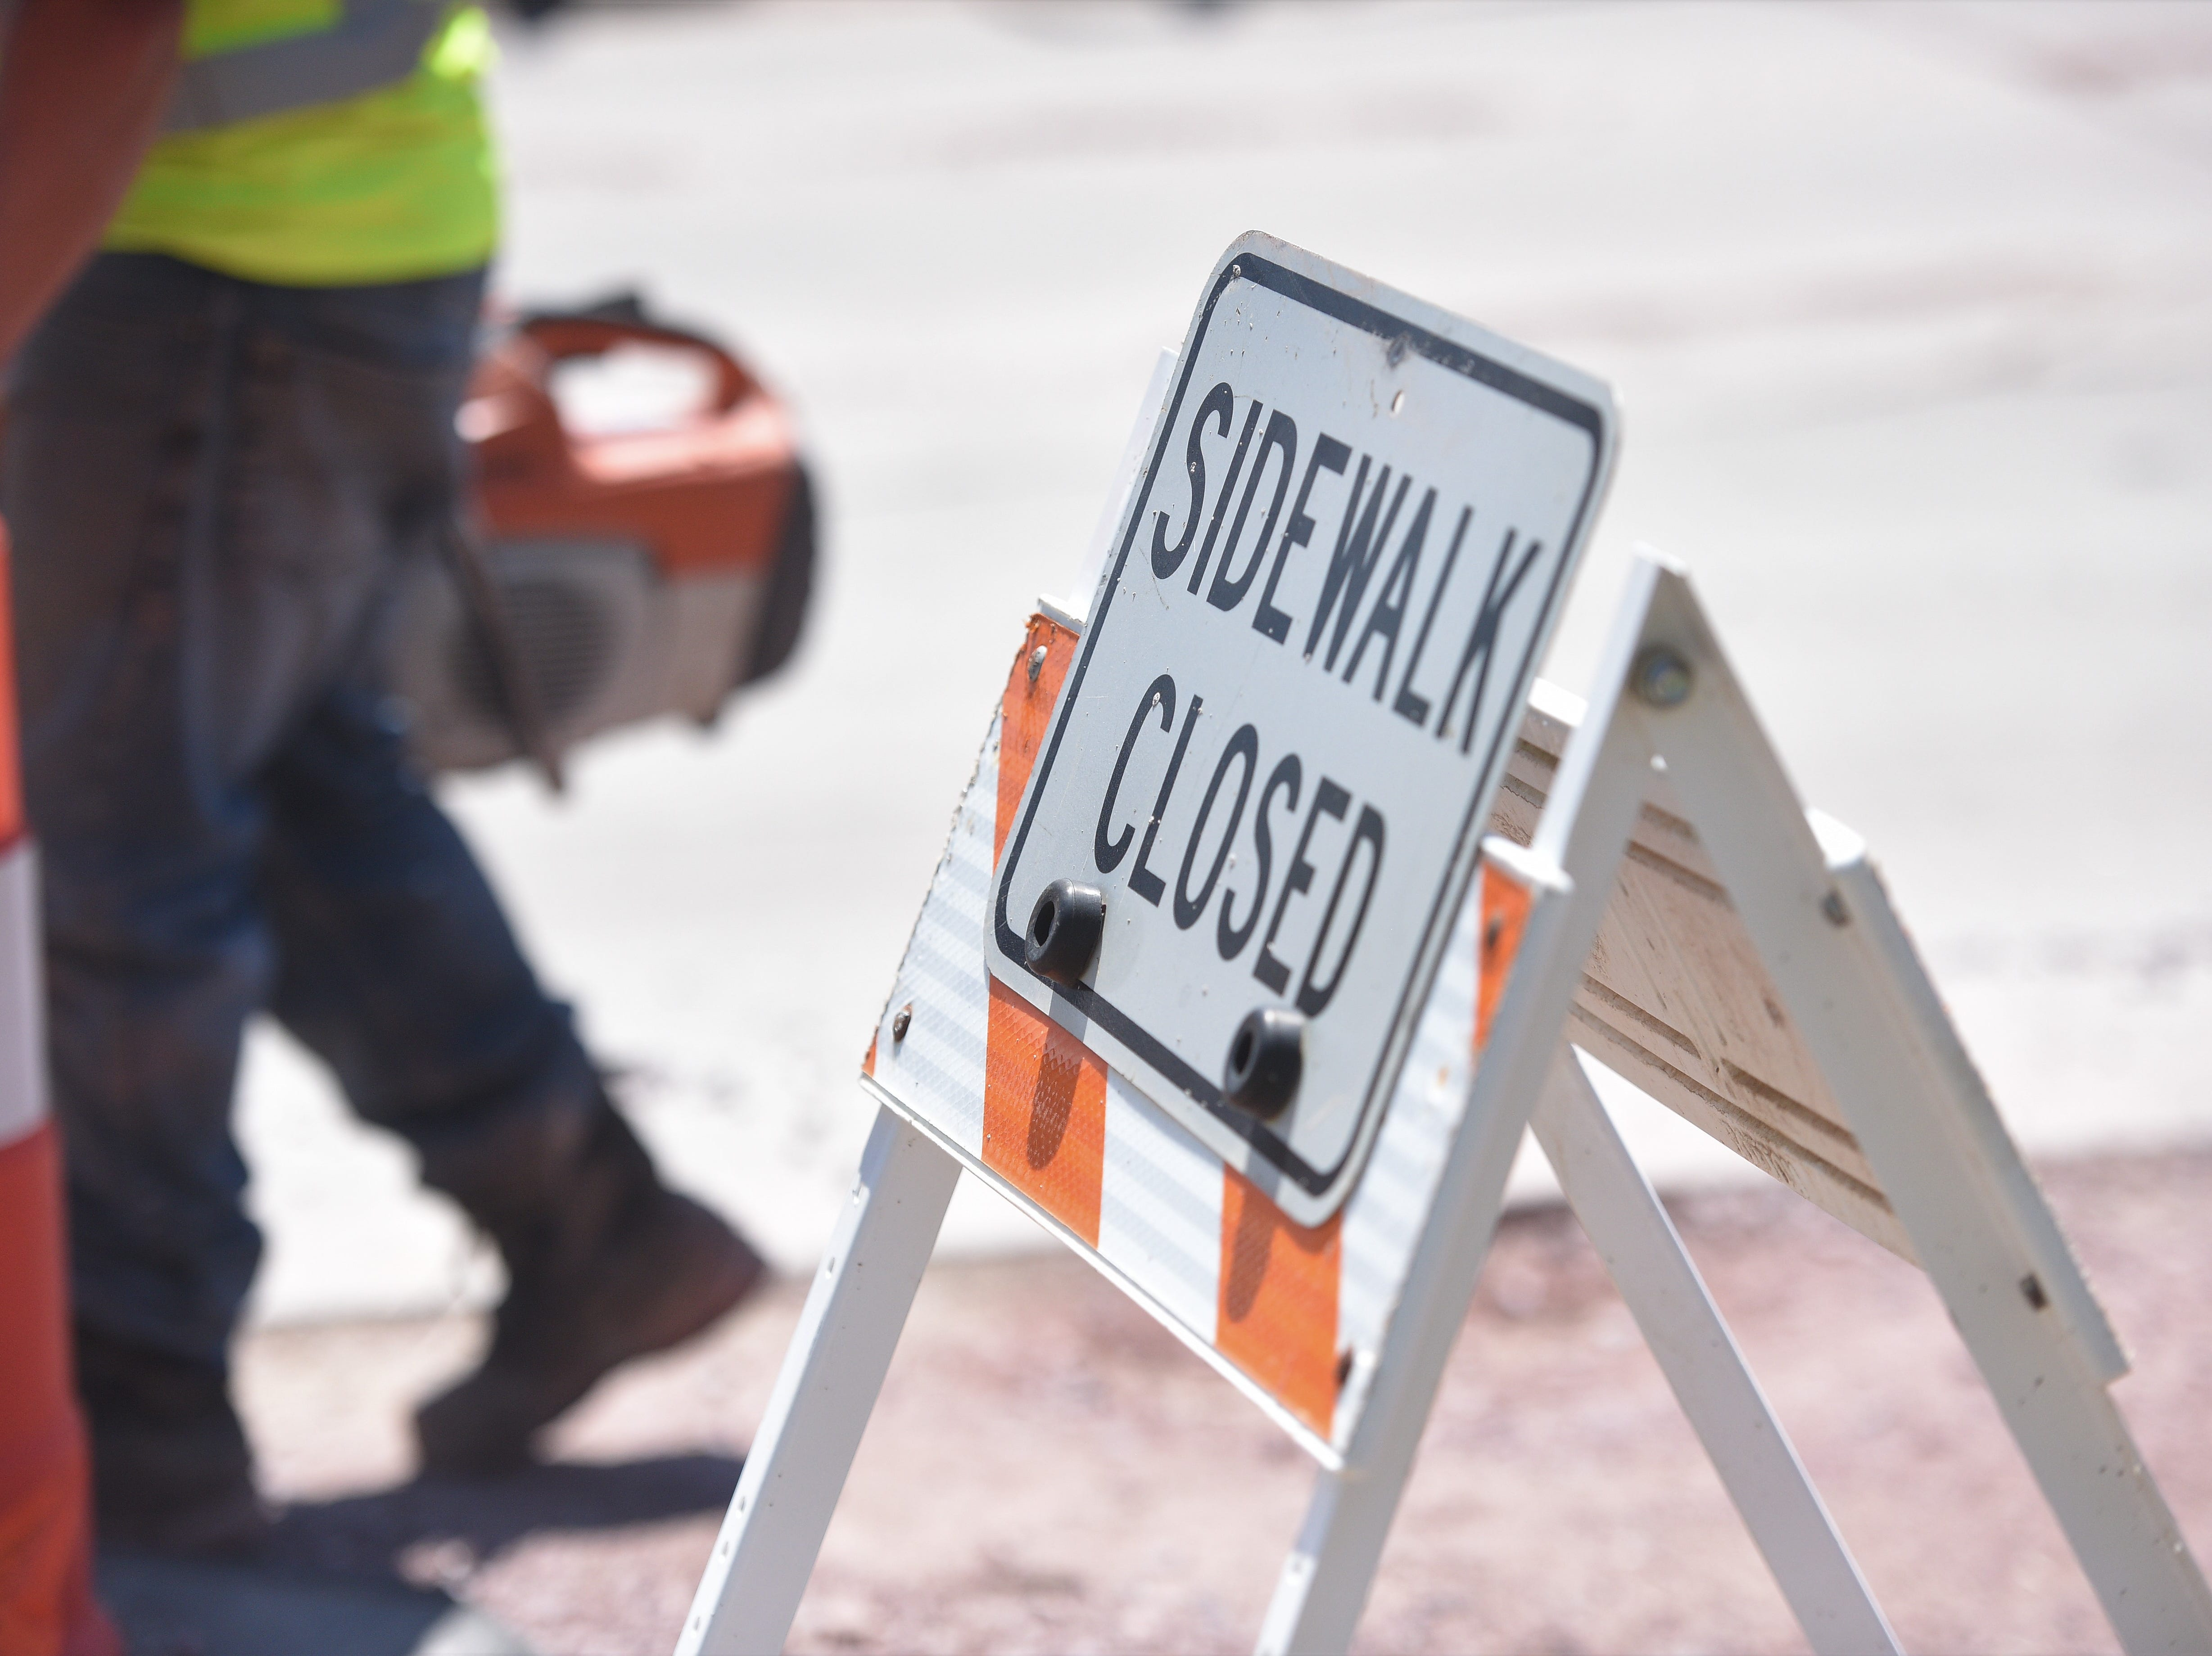 D & G Construction Inc. began a two-year project in April to rebuild East 26th Street between Yeager Road and Southeastern Avenue.